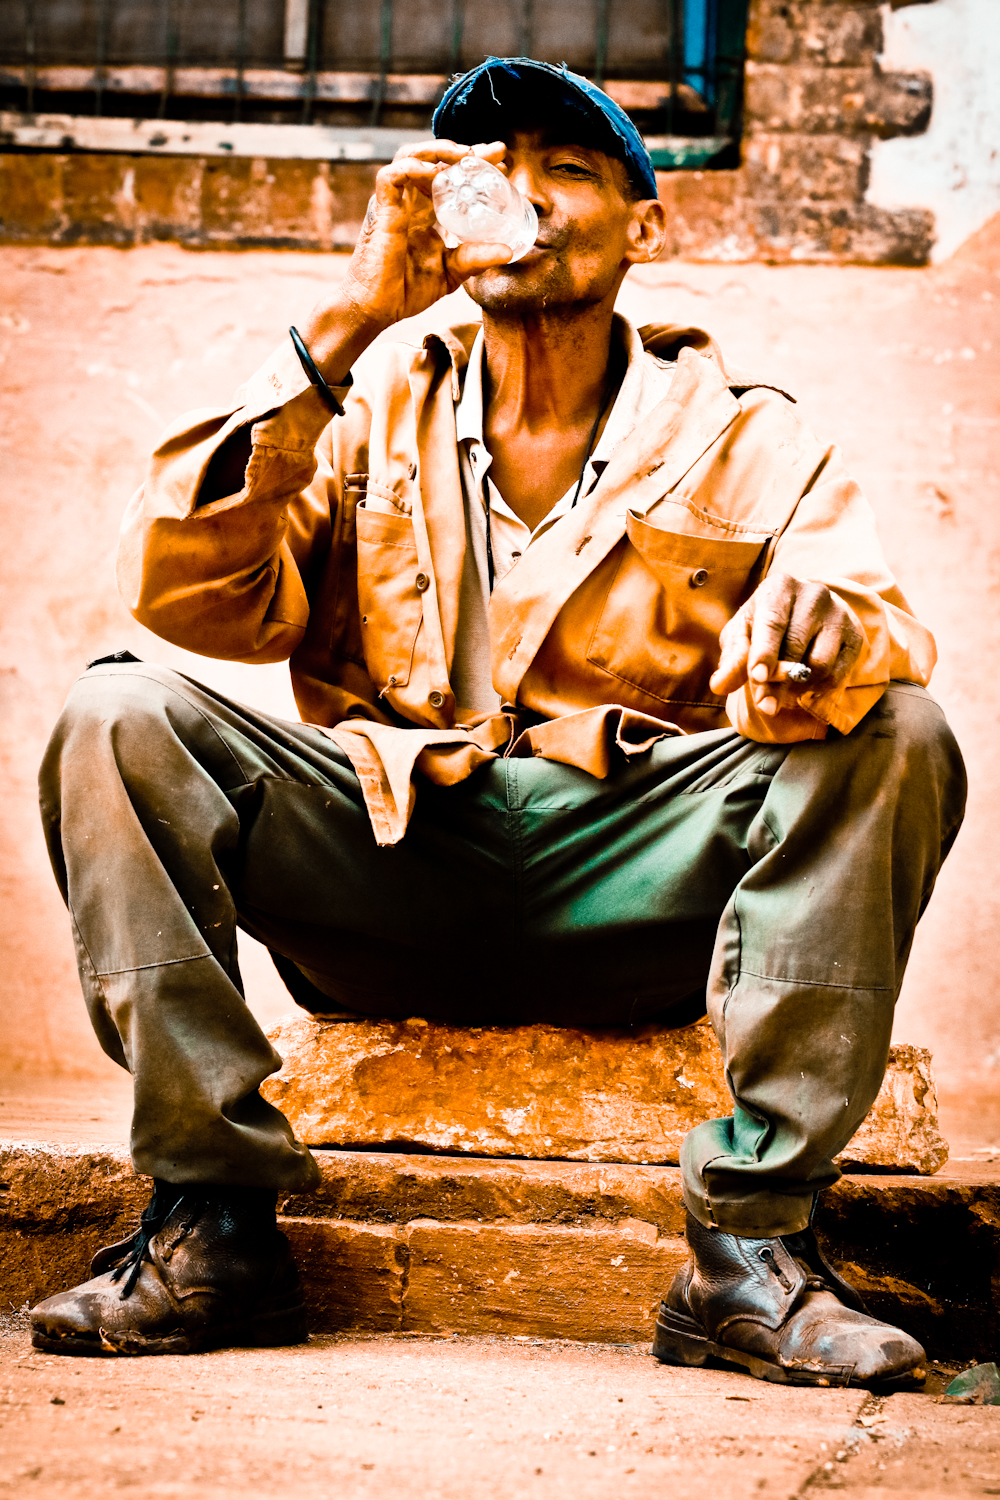 "Look at this guy, and you see Cuba. Just off his shift from the sugar cane processing mill, his clothes seem to reflect the colors of the revolution. With the cigar in his hand, and boots that have seen better days, he represents his ""Pueblo."""